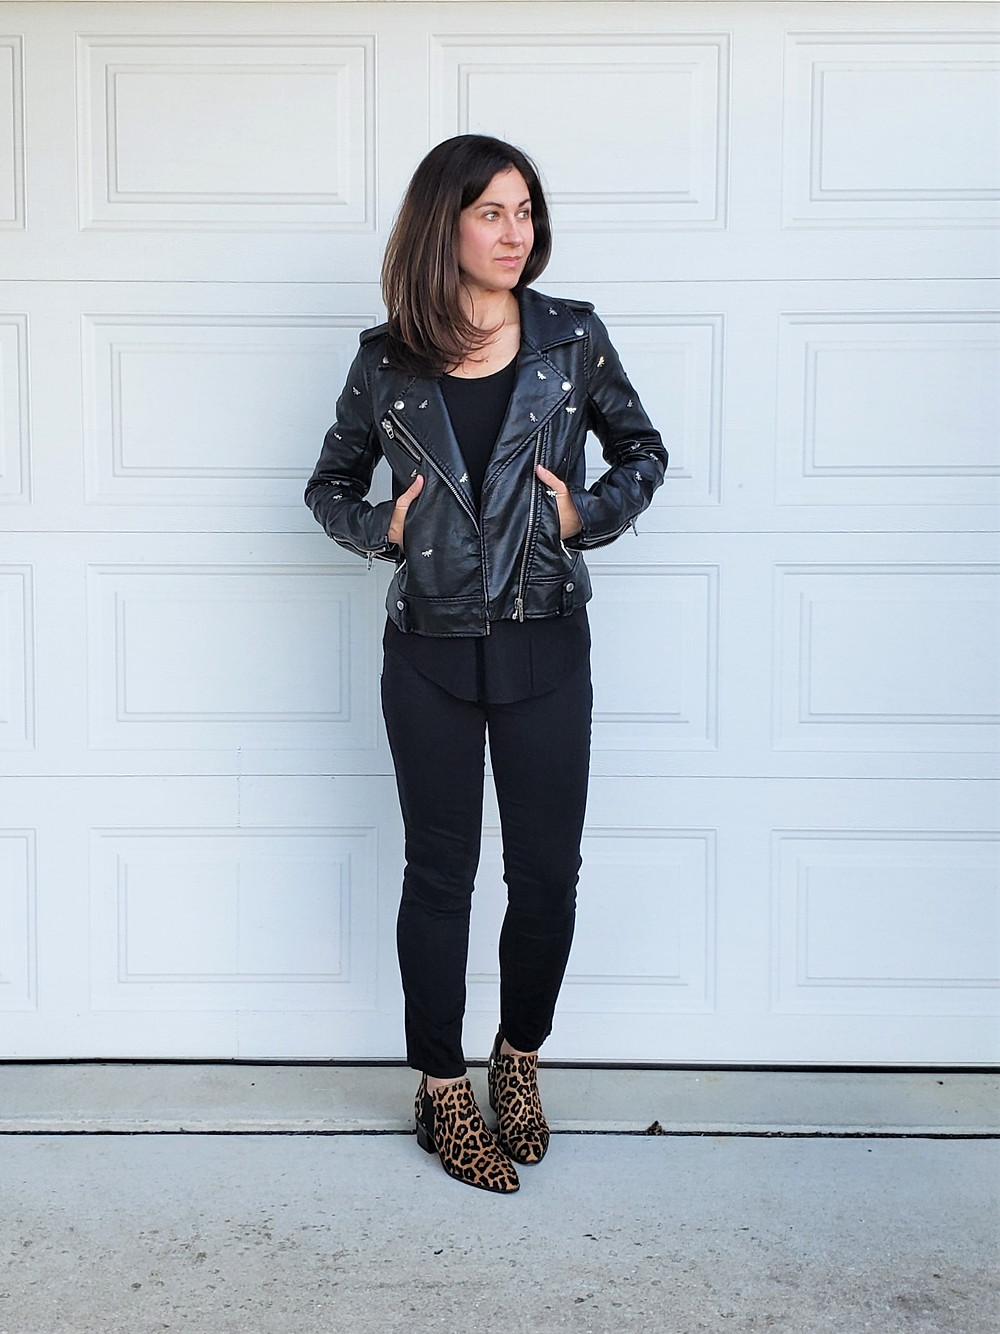 edgy mom style moto jacket outfit